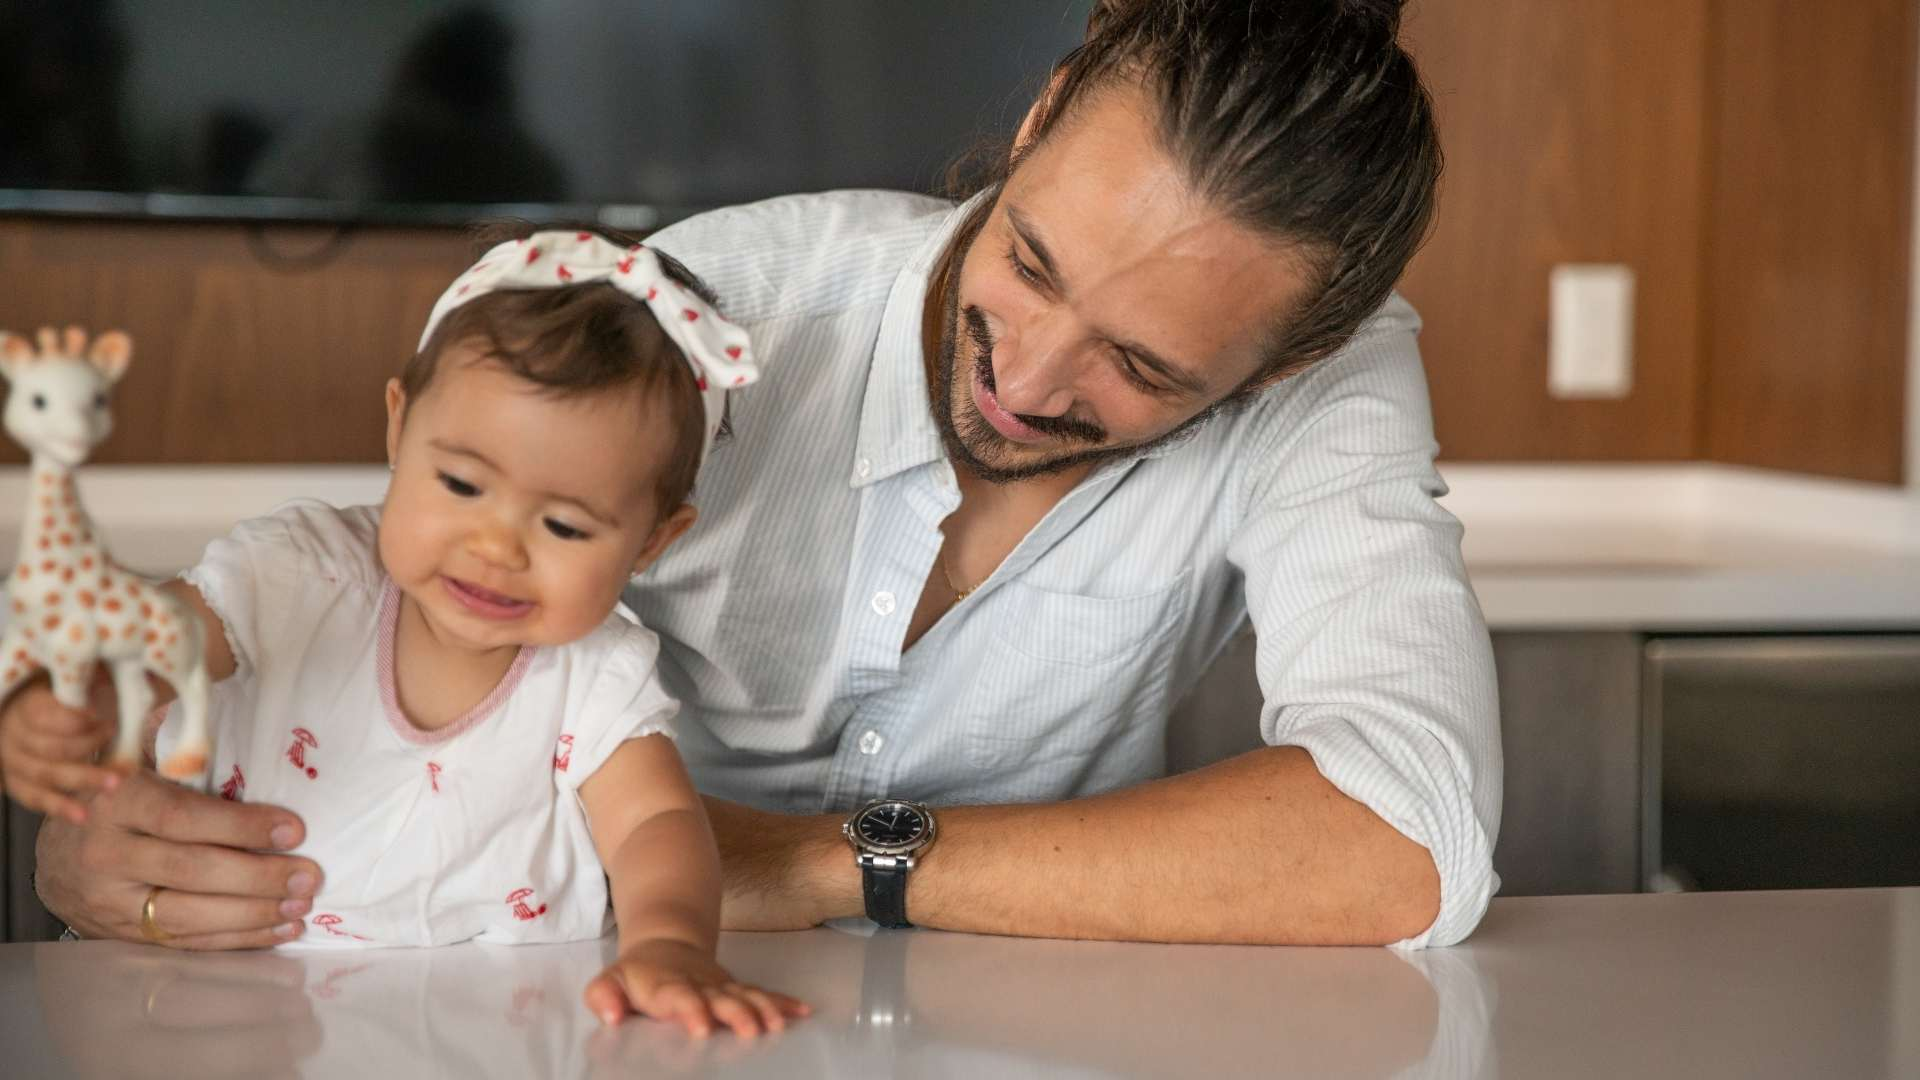 10 Stereotypes That Stay At Home Dads Usually Face dadgold parenting tips